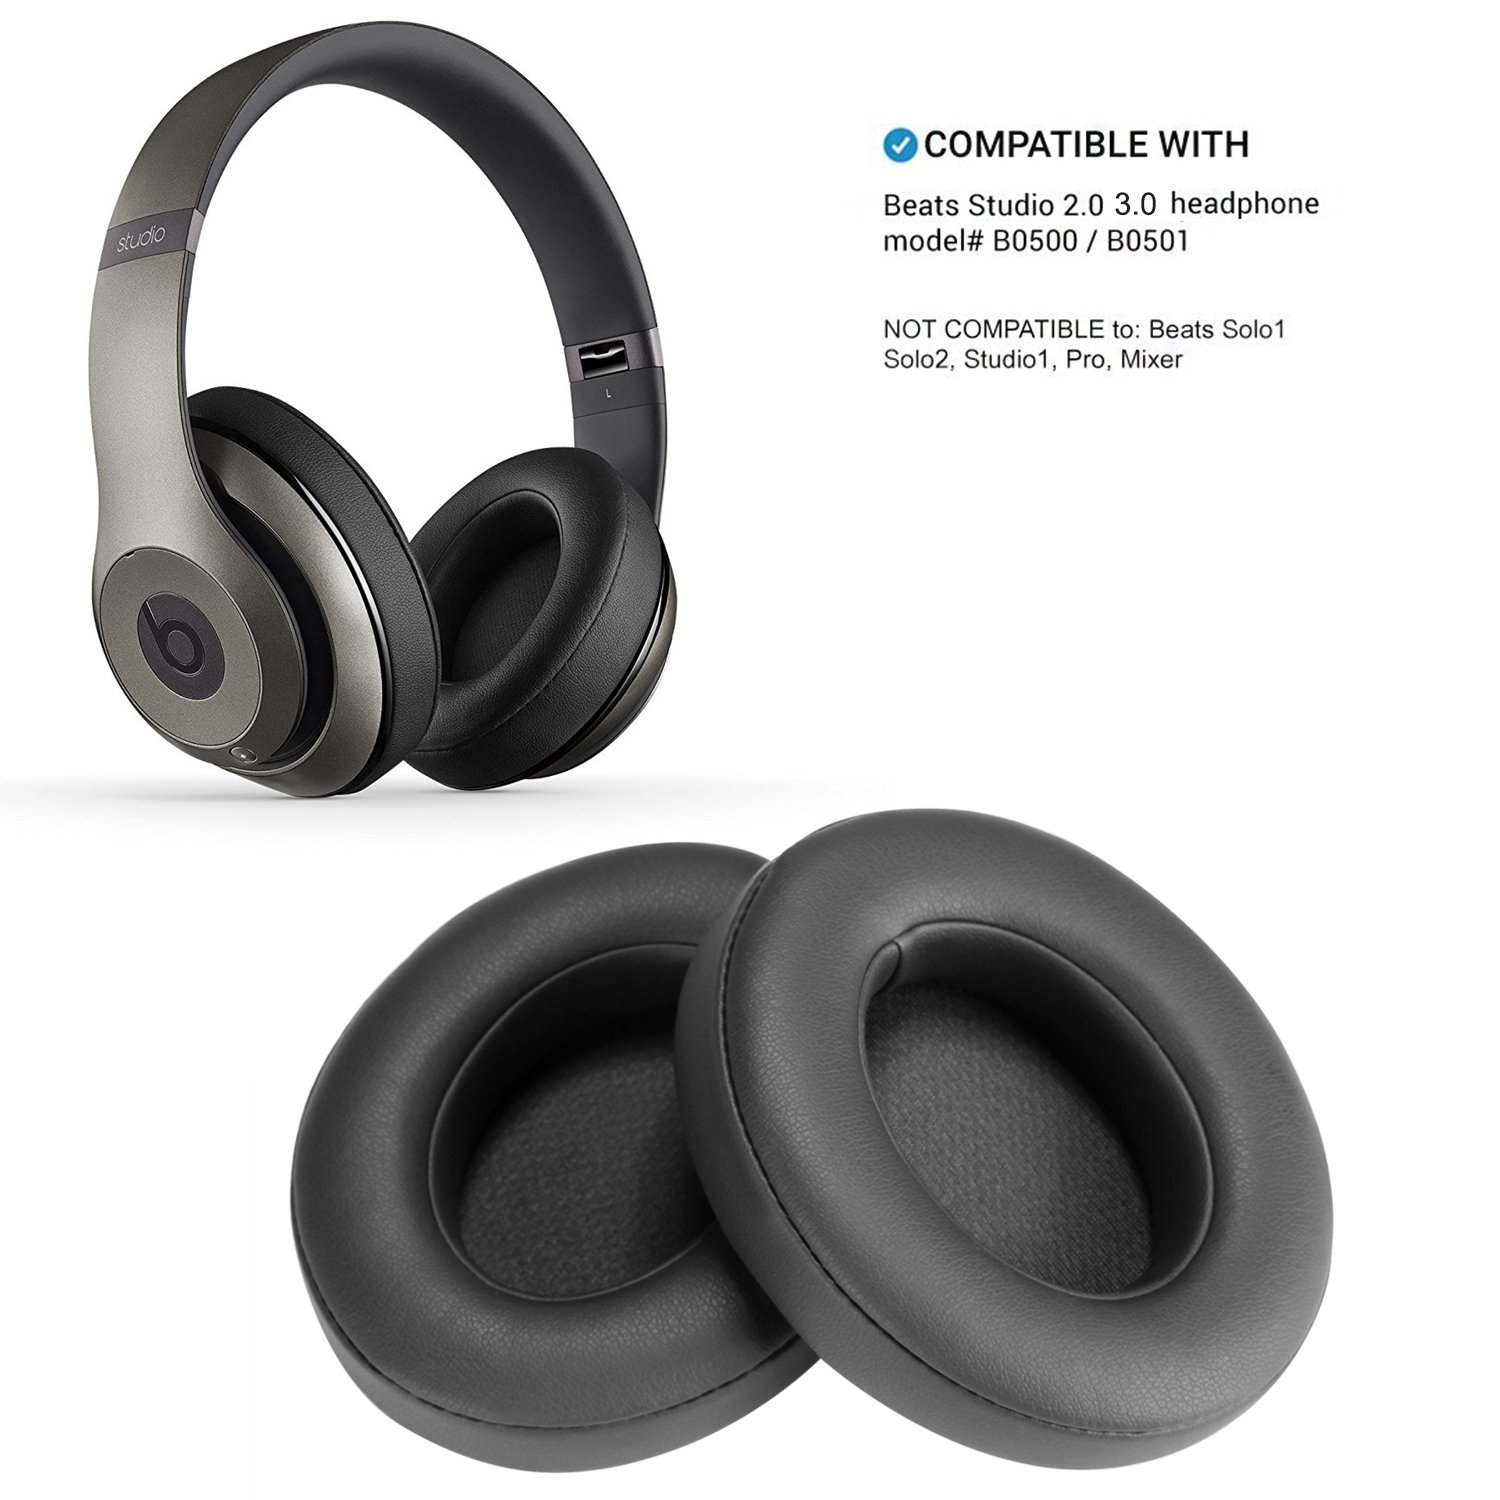 Almohadillas Auriculares Beats Studio 2.0 Wired/wireles(xsr)